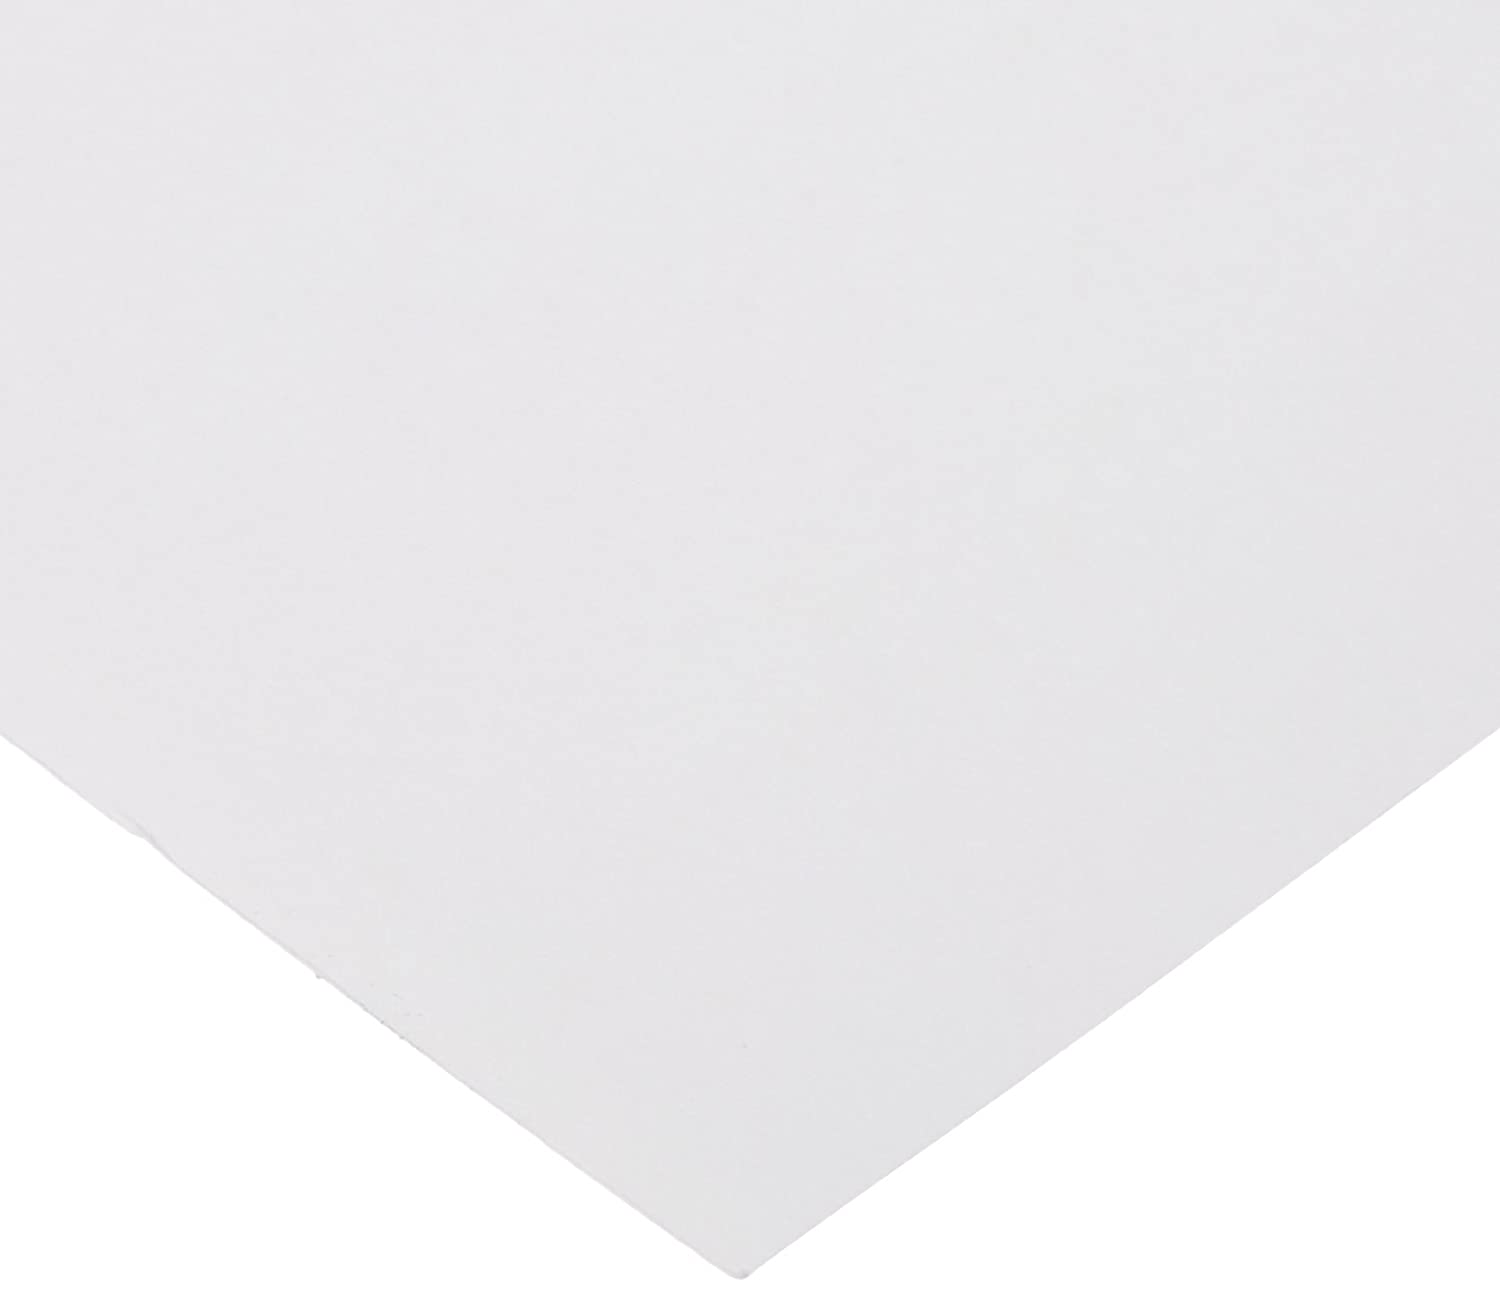 low-pricing Whatman 3030-392 Pure Cellulose Blotting Paper mm Width x 45 35 Classic